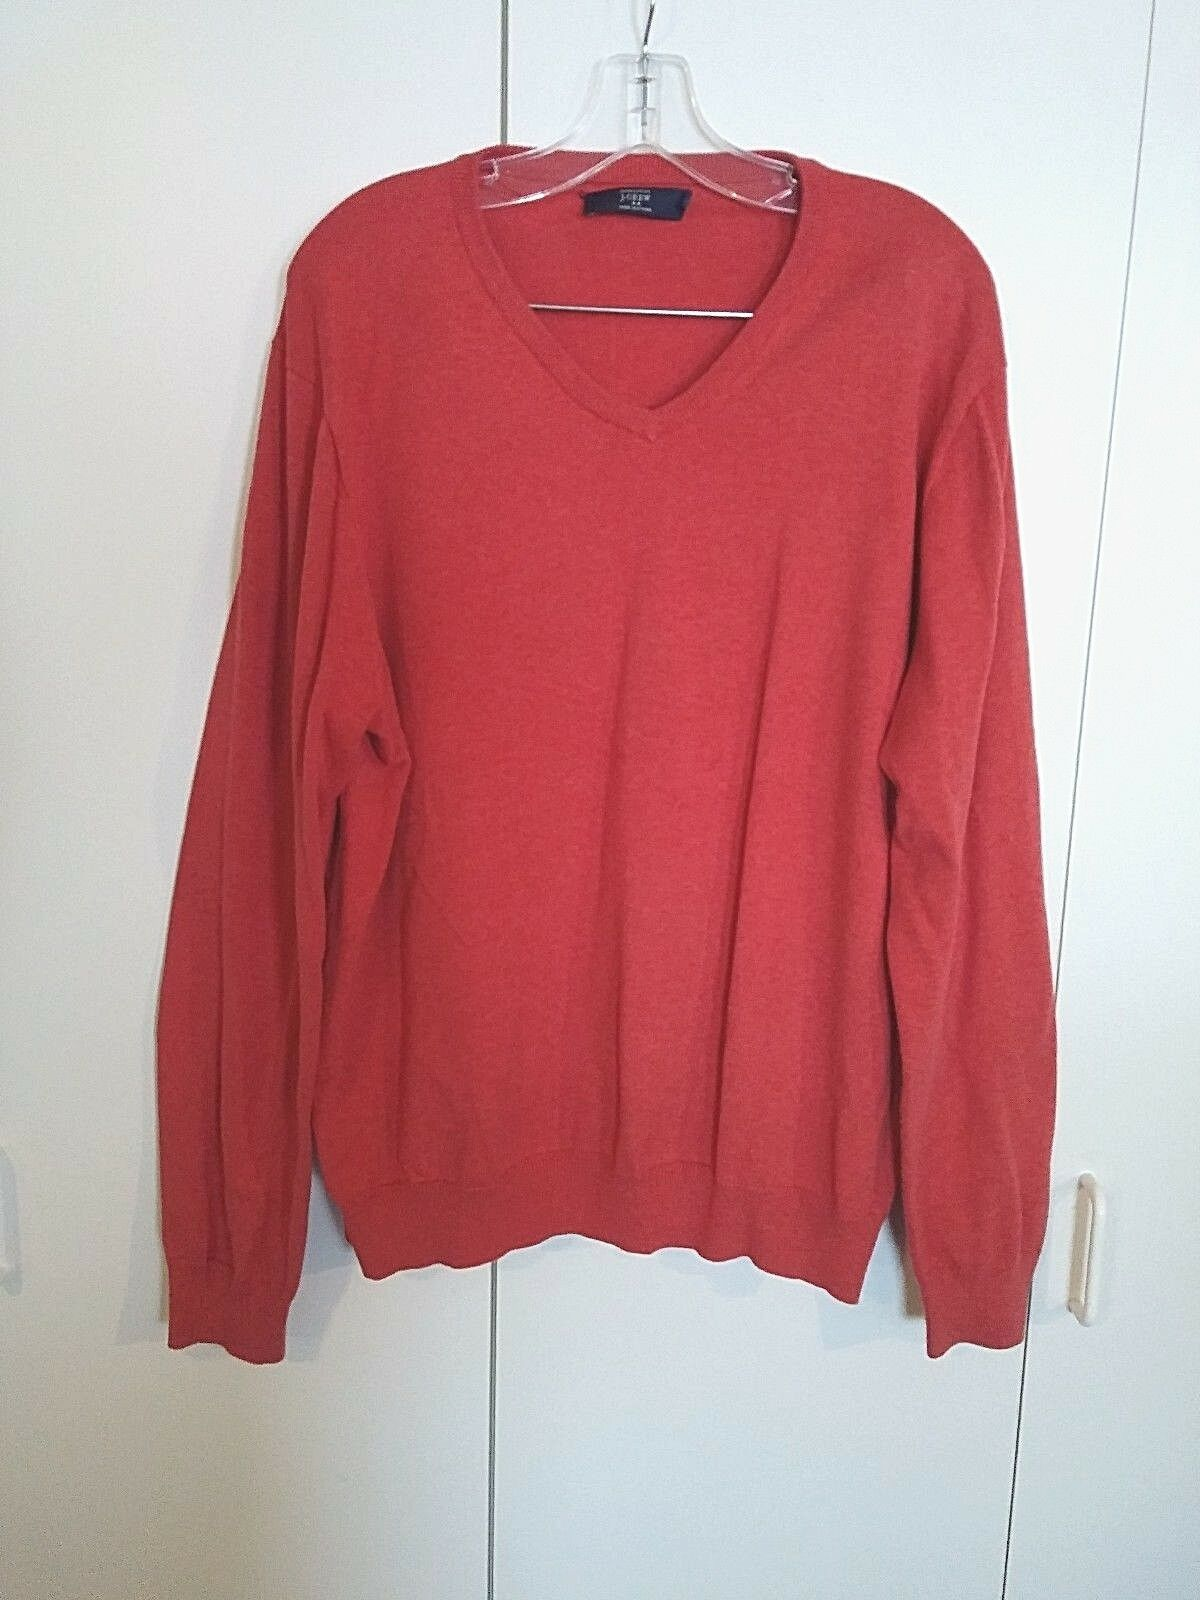 Primary image for J.CREW MEN'S 100% COTTON LS V-NECK PULLOVER SWEATER-XL-NICE-WORN ONCE-ORANGE